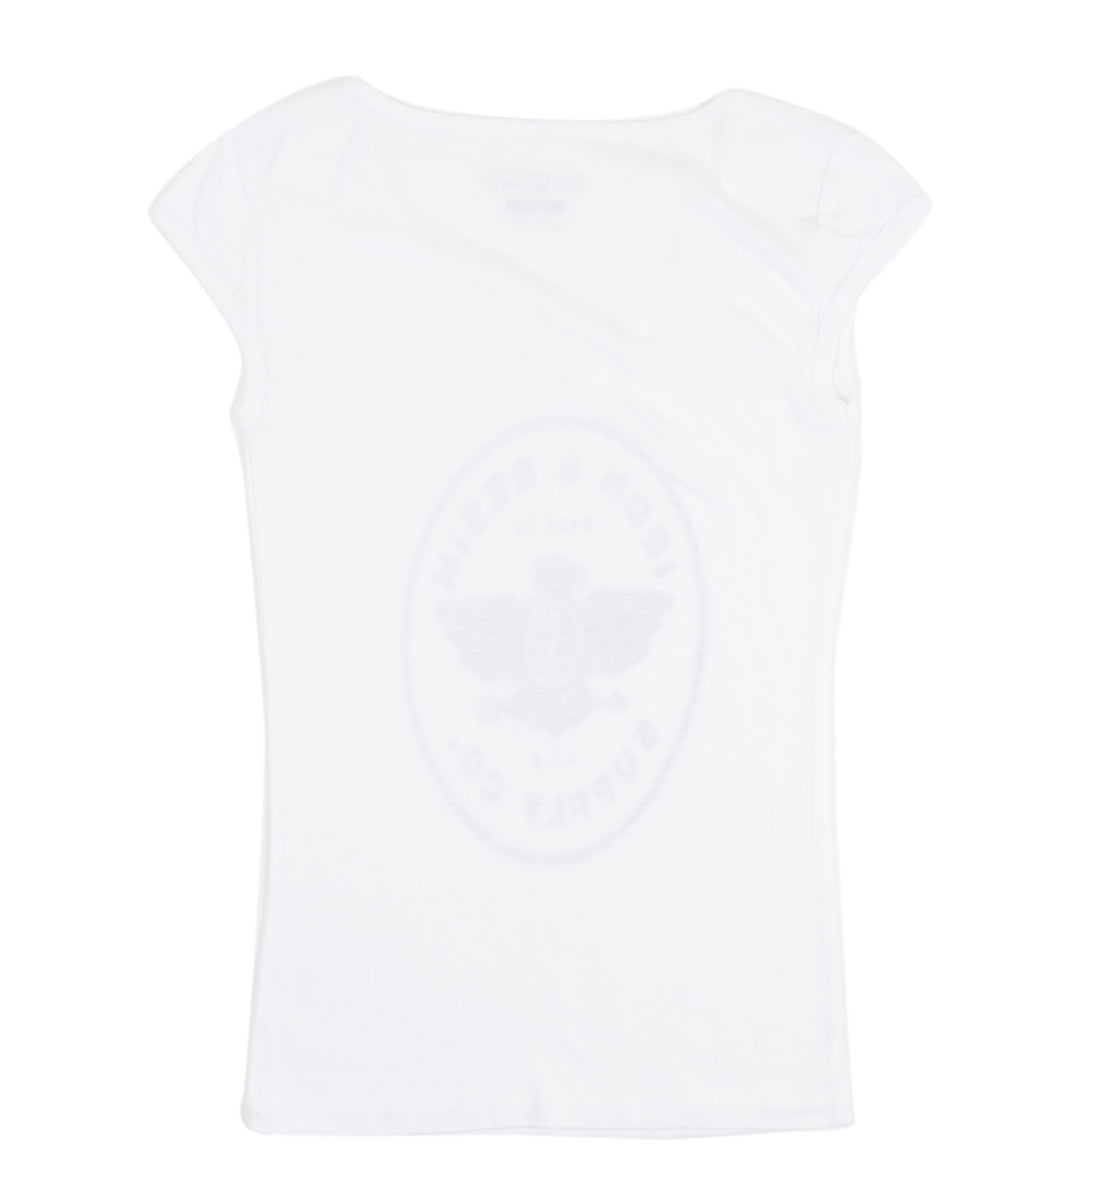 INR Eagle Supply Co. Women's Tee - Apparel: Women's: T-Shirts - Iron and Resin